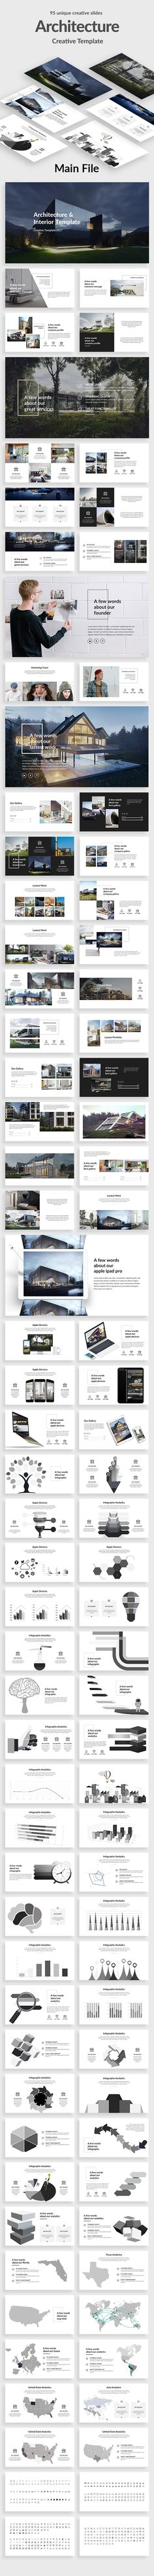 Architecture and Interior Powerpoint Template - Creative #PowerPoint #Templates Download here: https://graphicriver.net/item/architecture-and-interior-powerpoint-template/20045624?ref=alena994